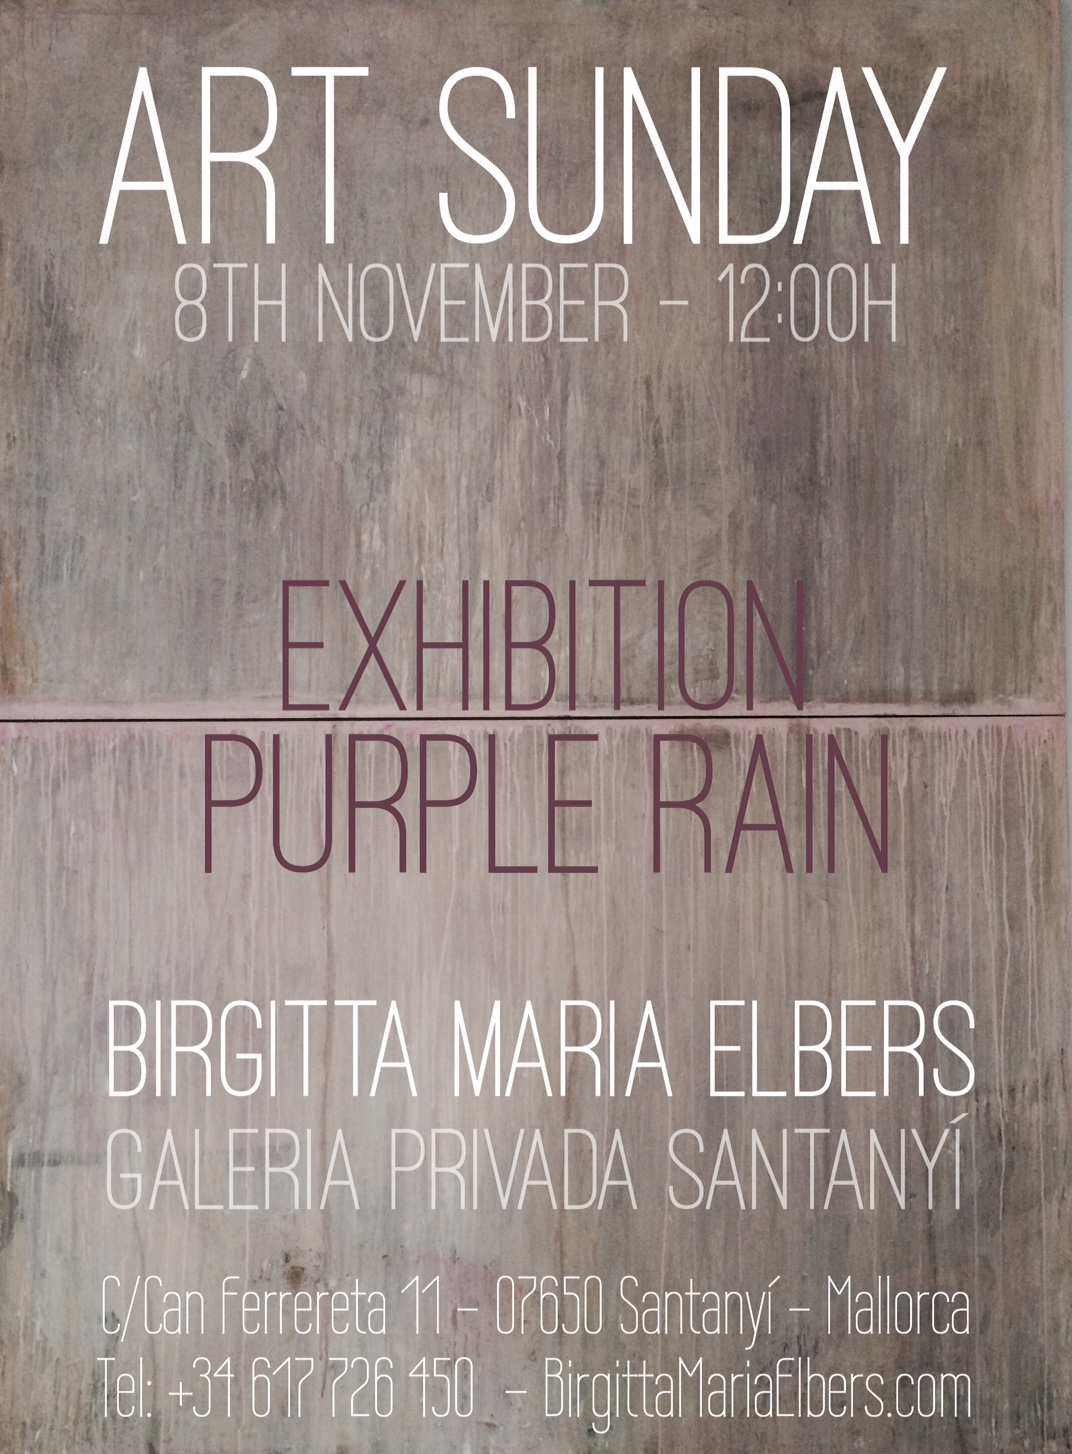 20161108-art-sunday-exhibition-purple-rain